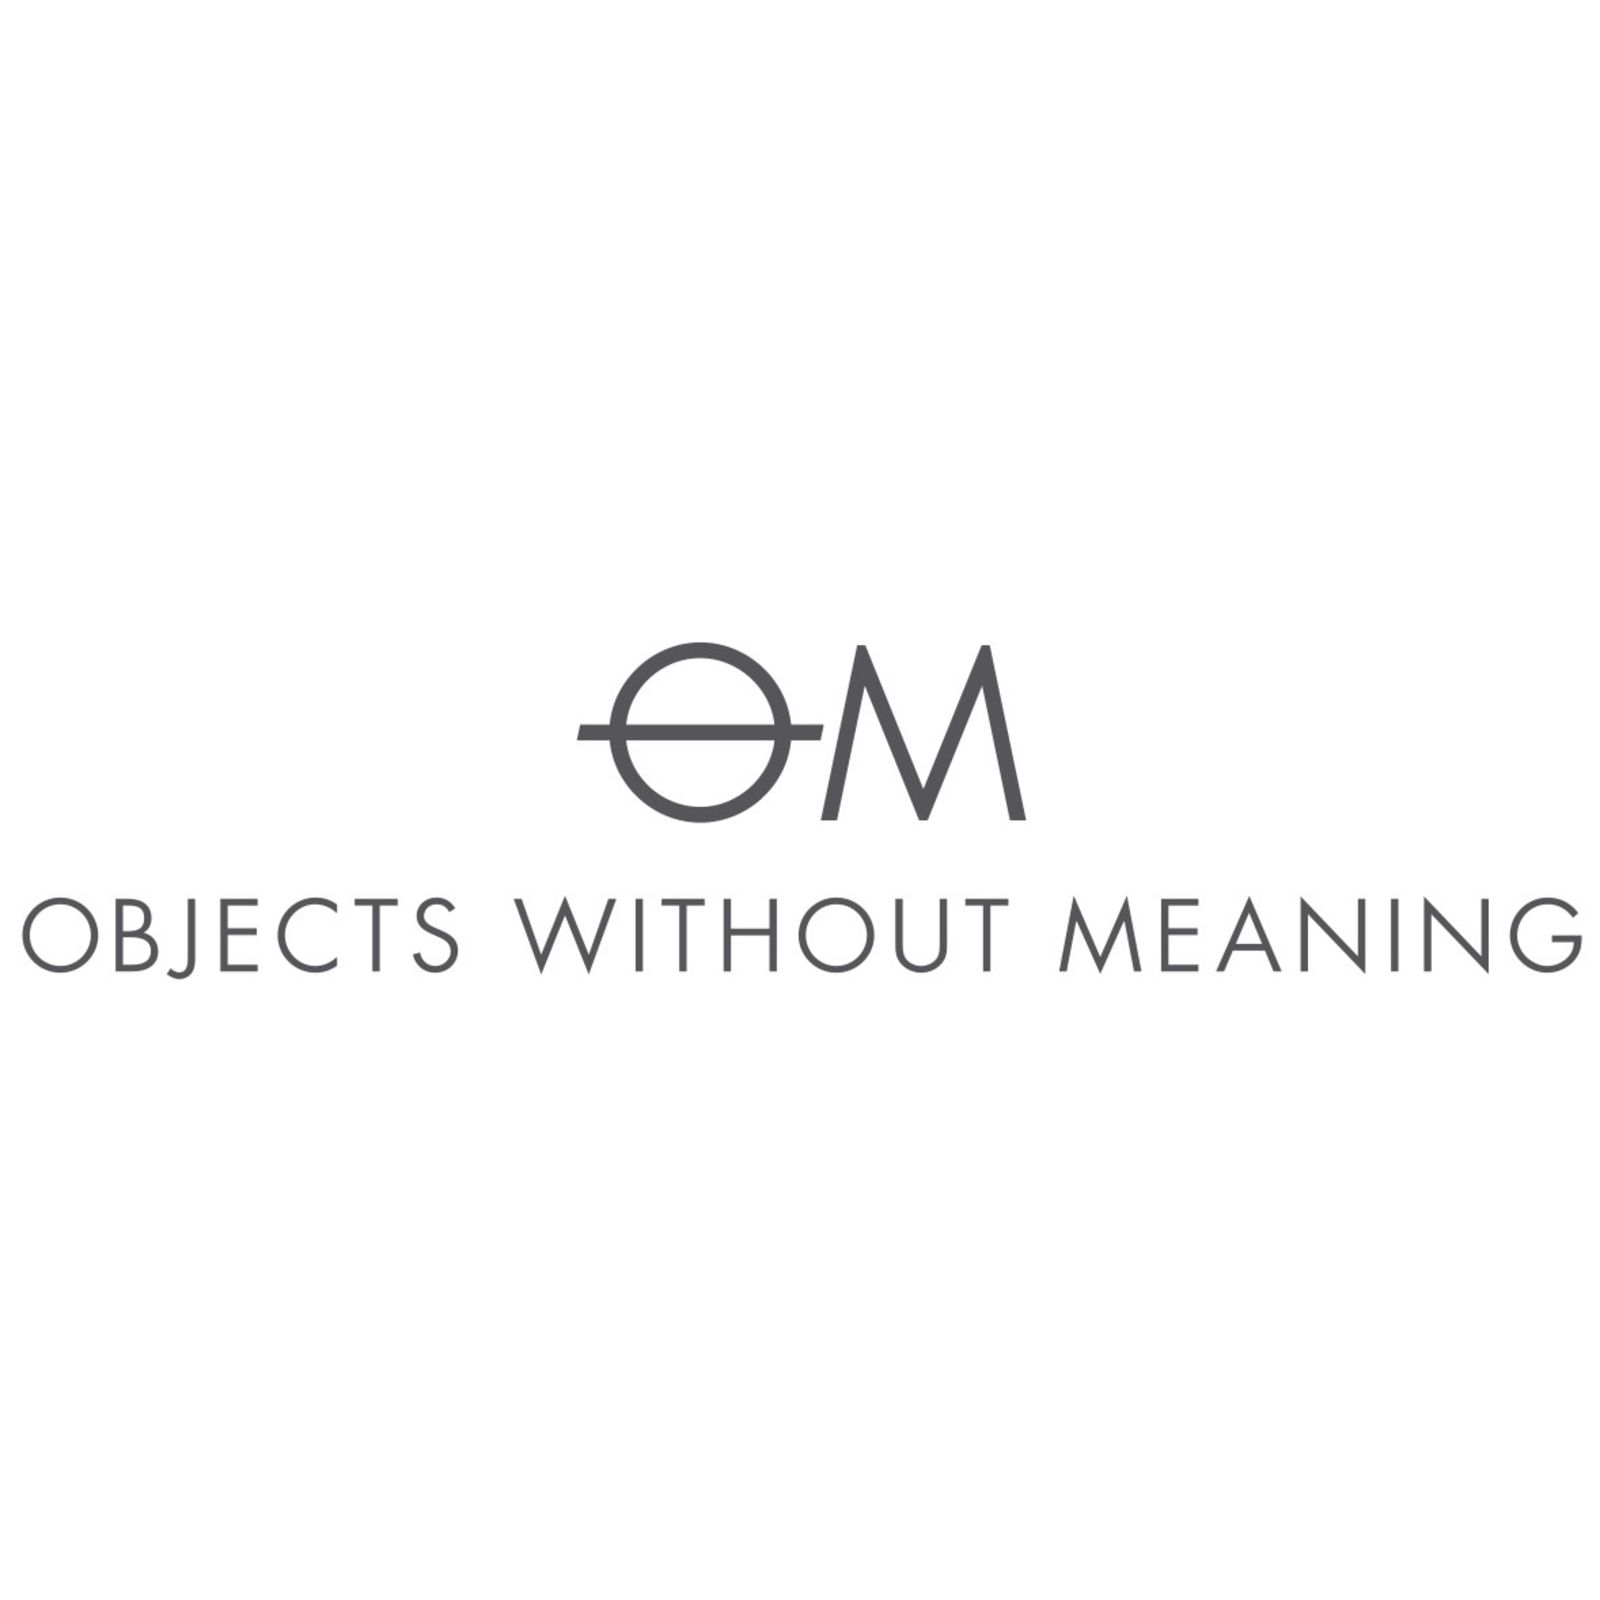 OBJECTS WITHOUT MEANING